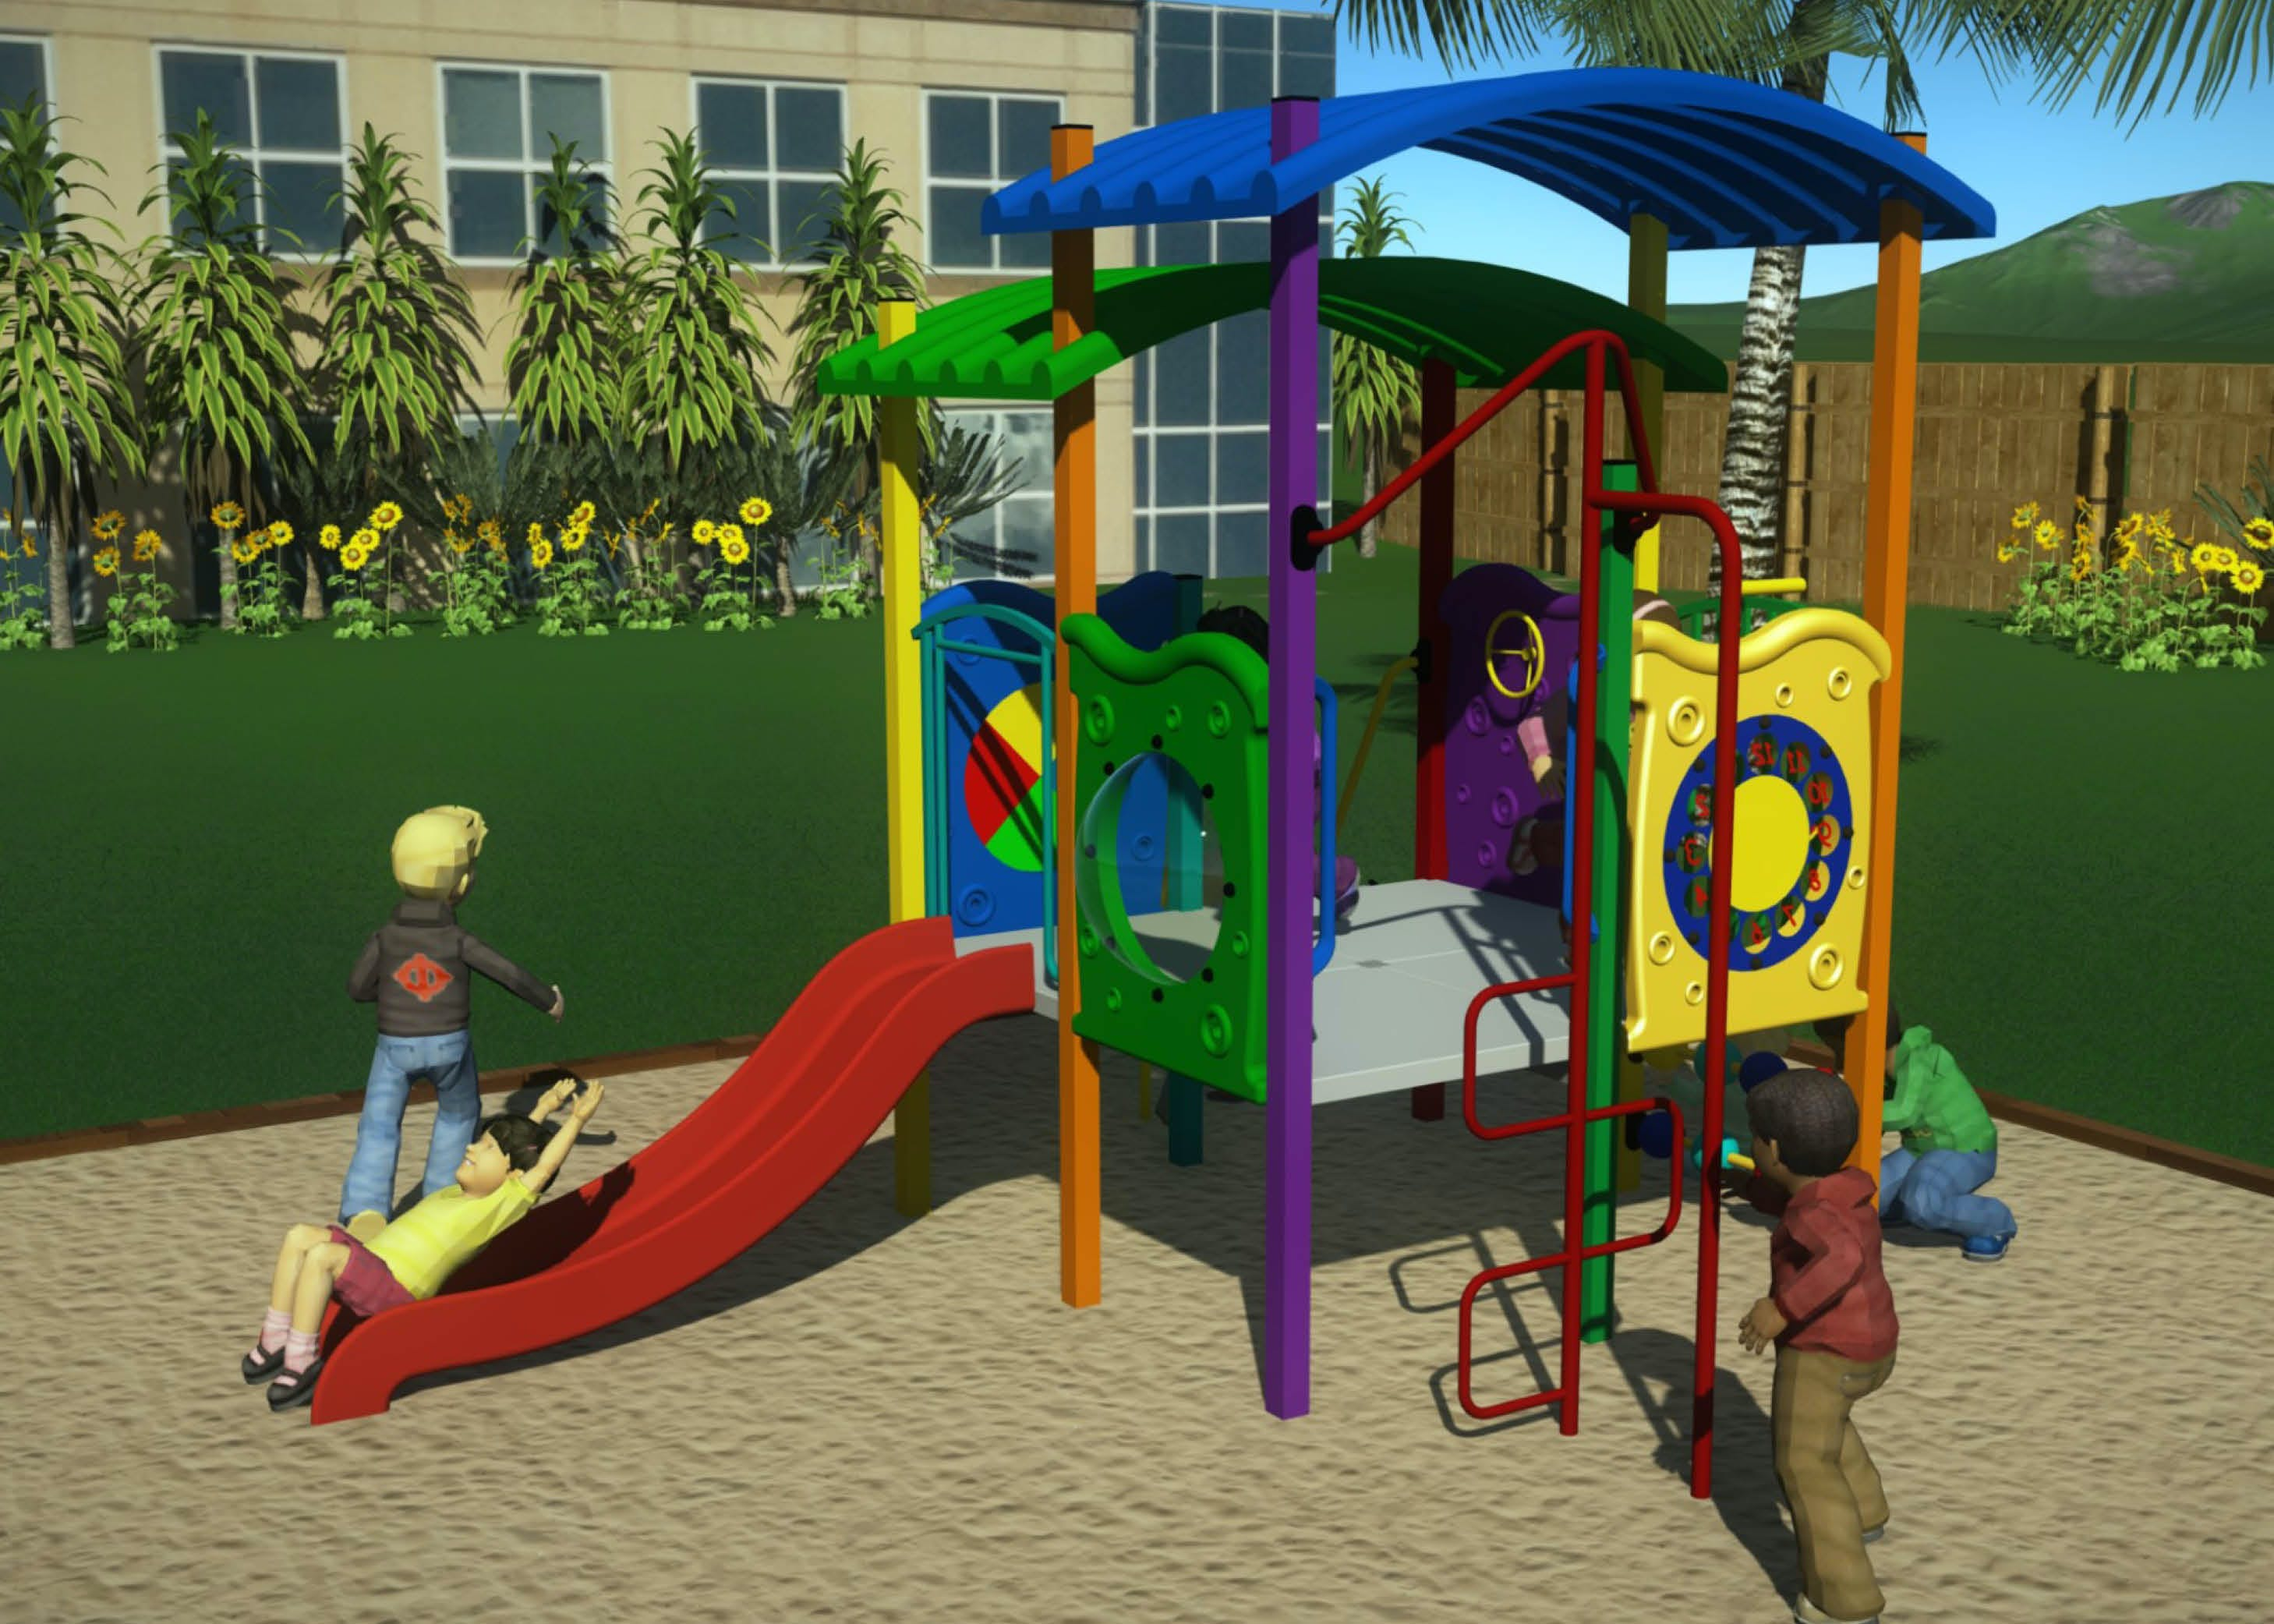 Play equipment that will let you explore